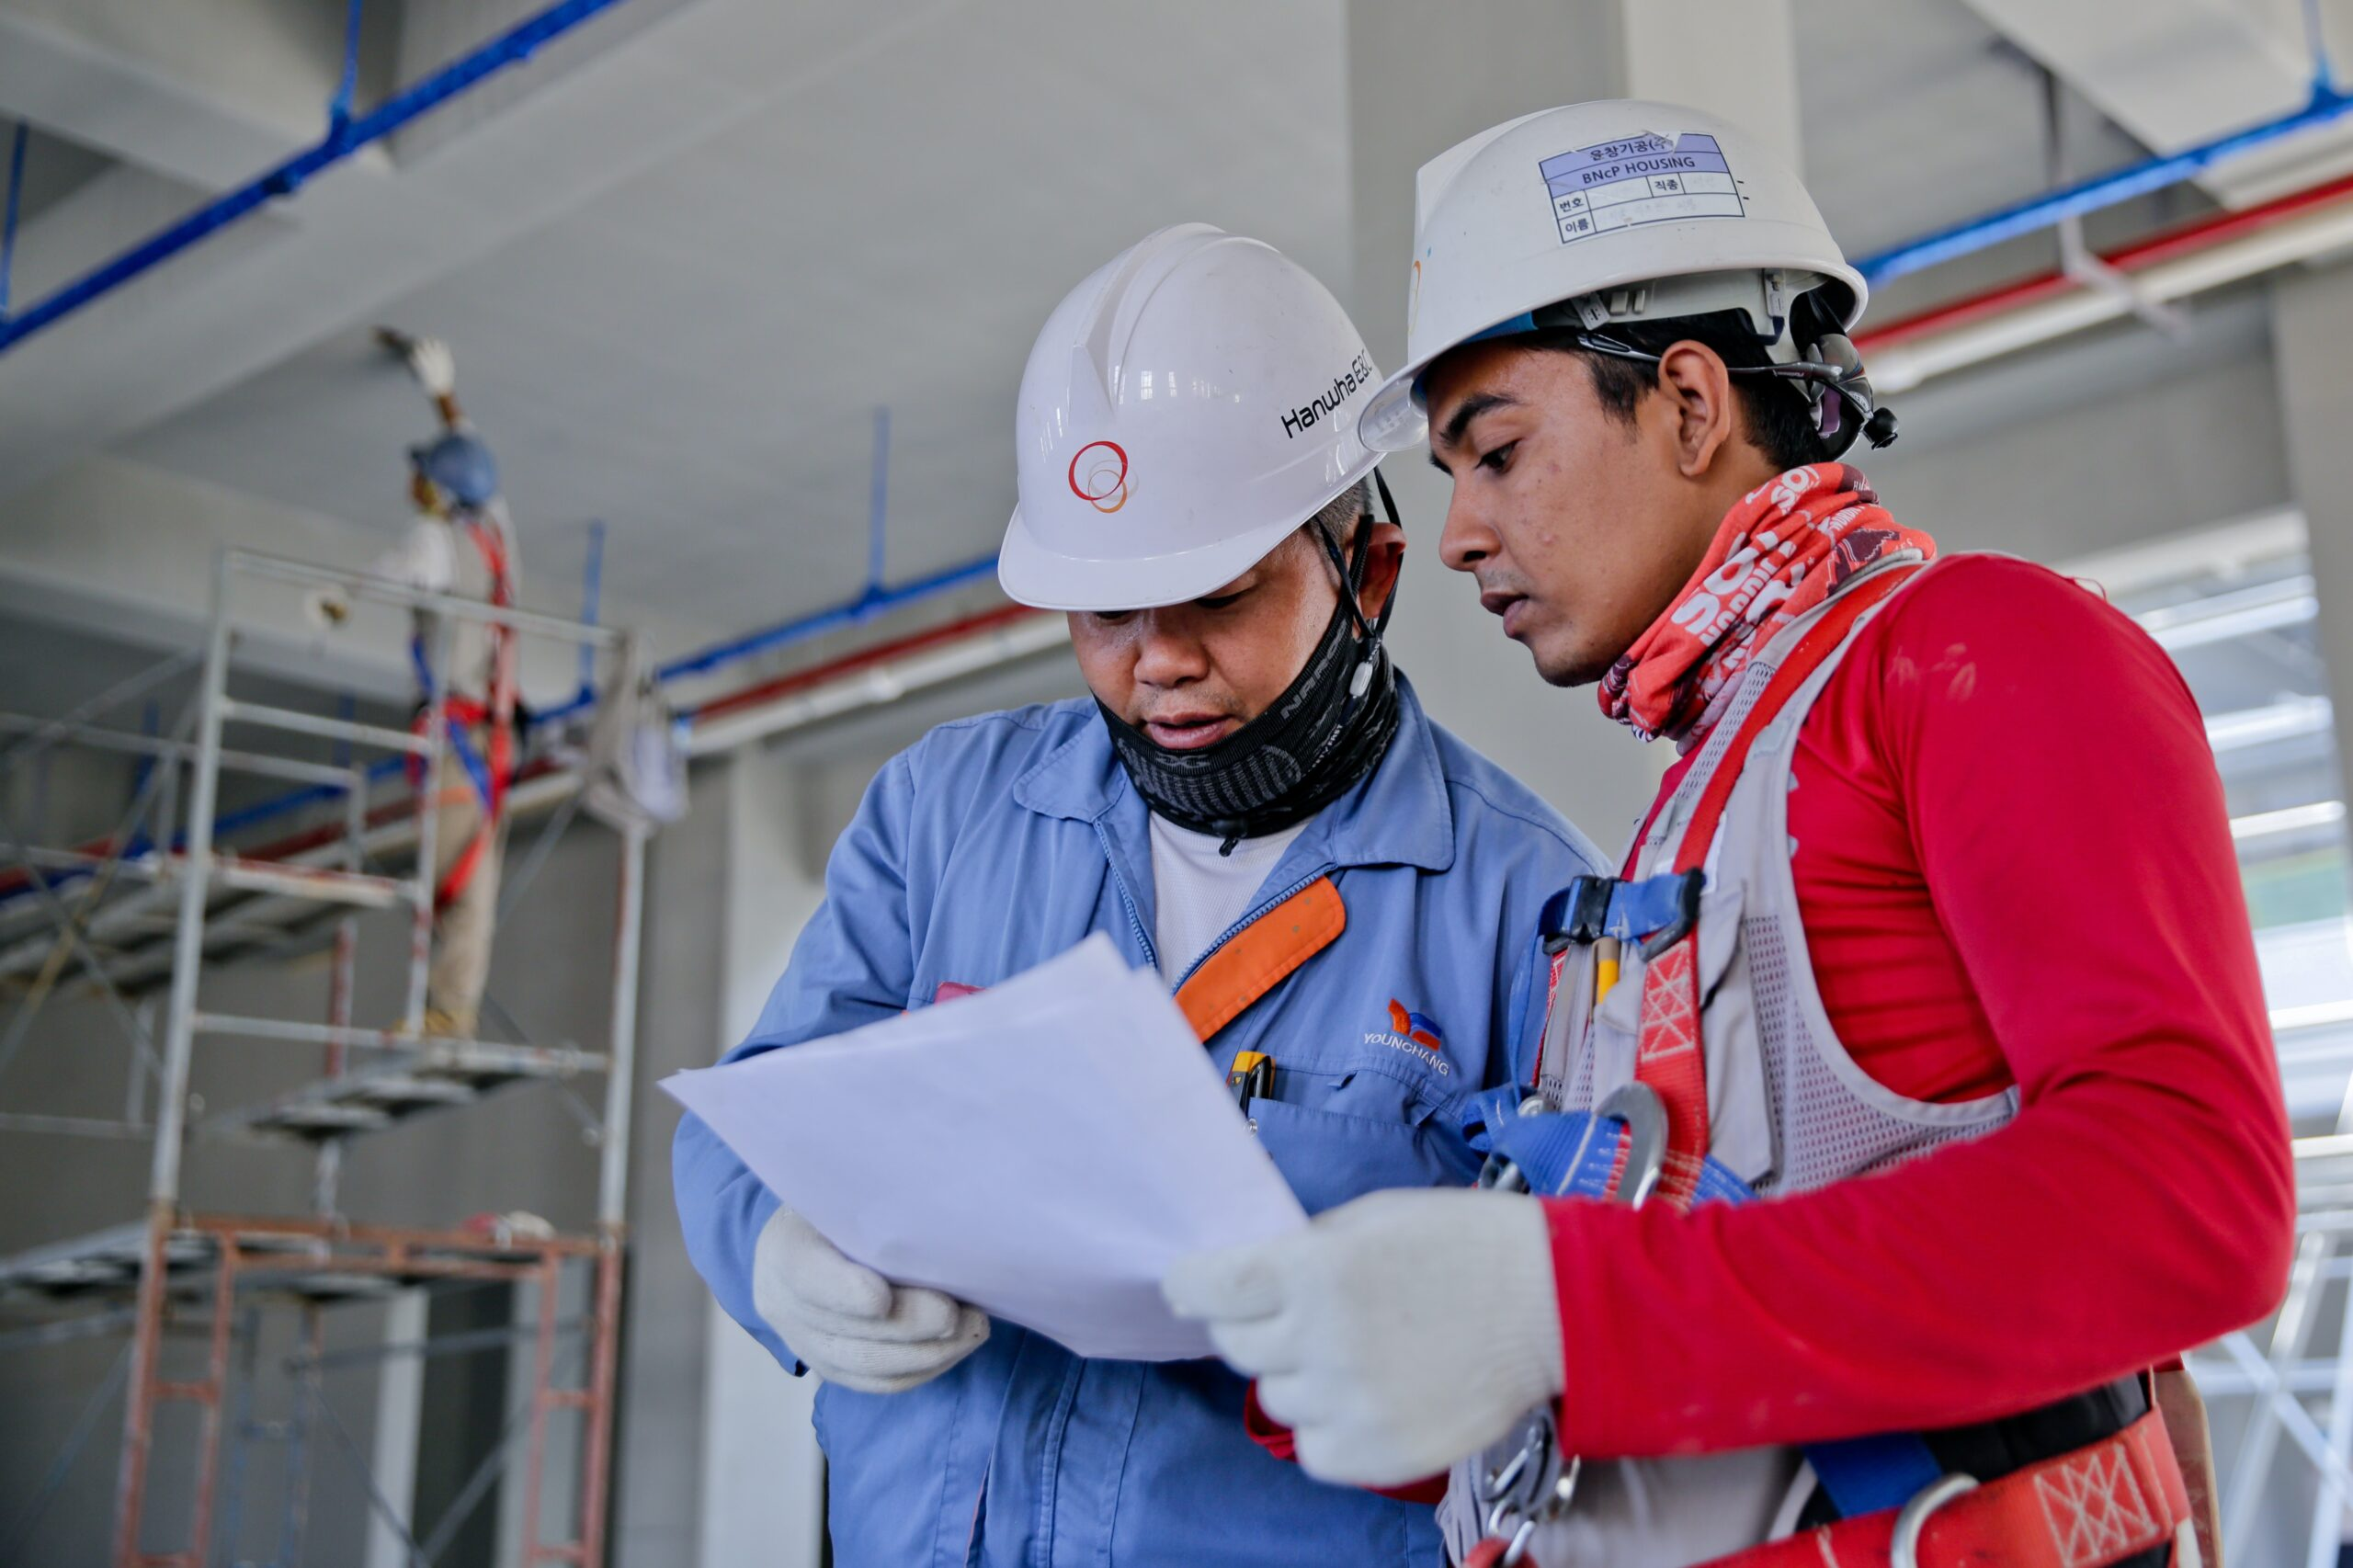 Construction workers looking at white paper